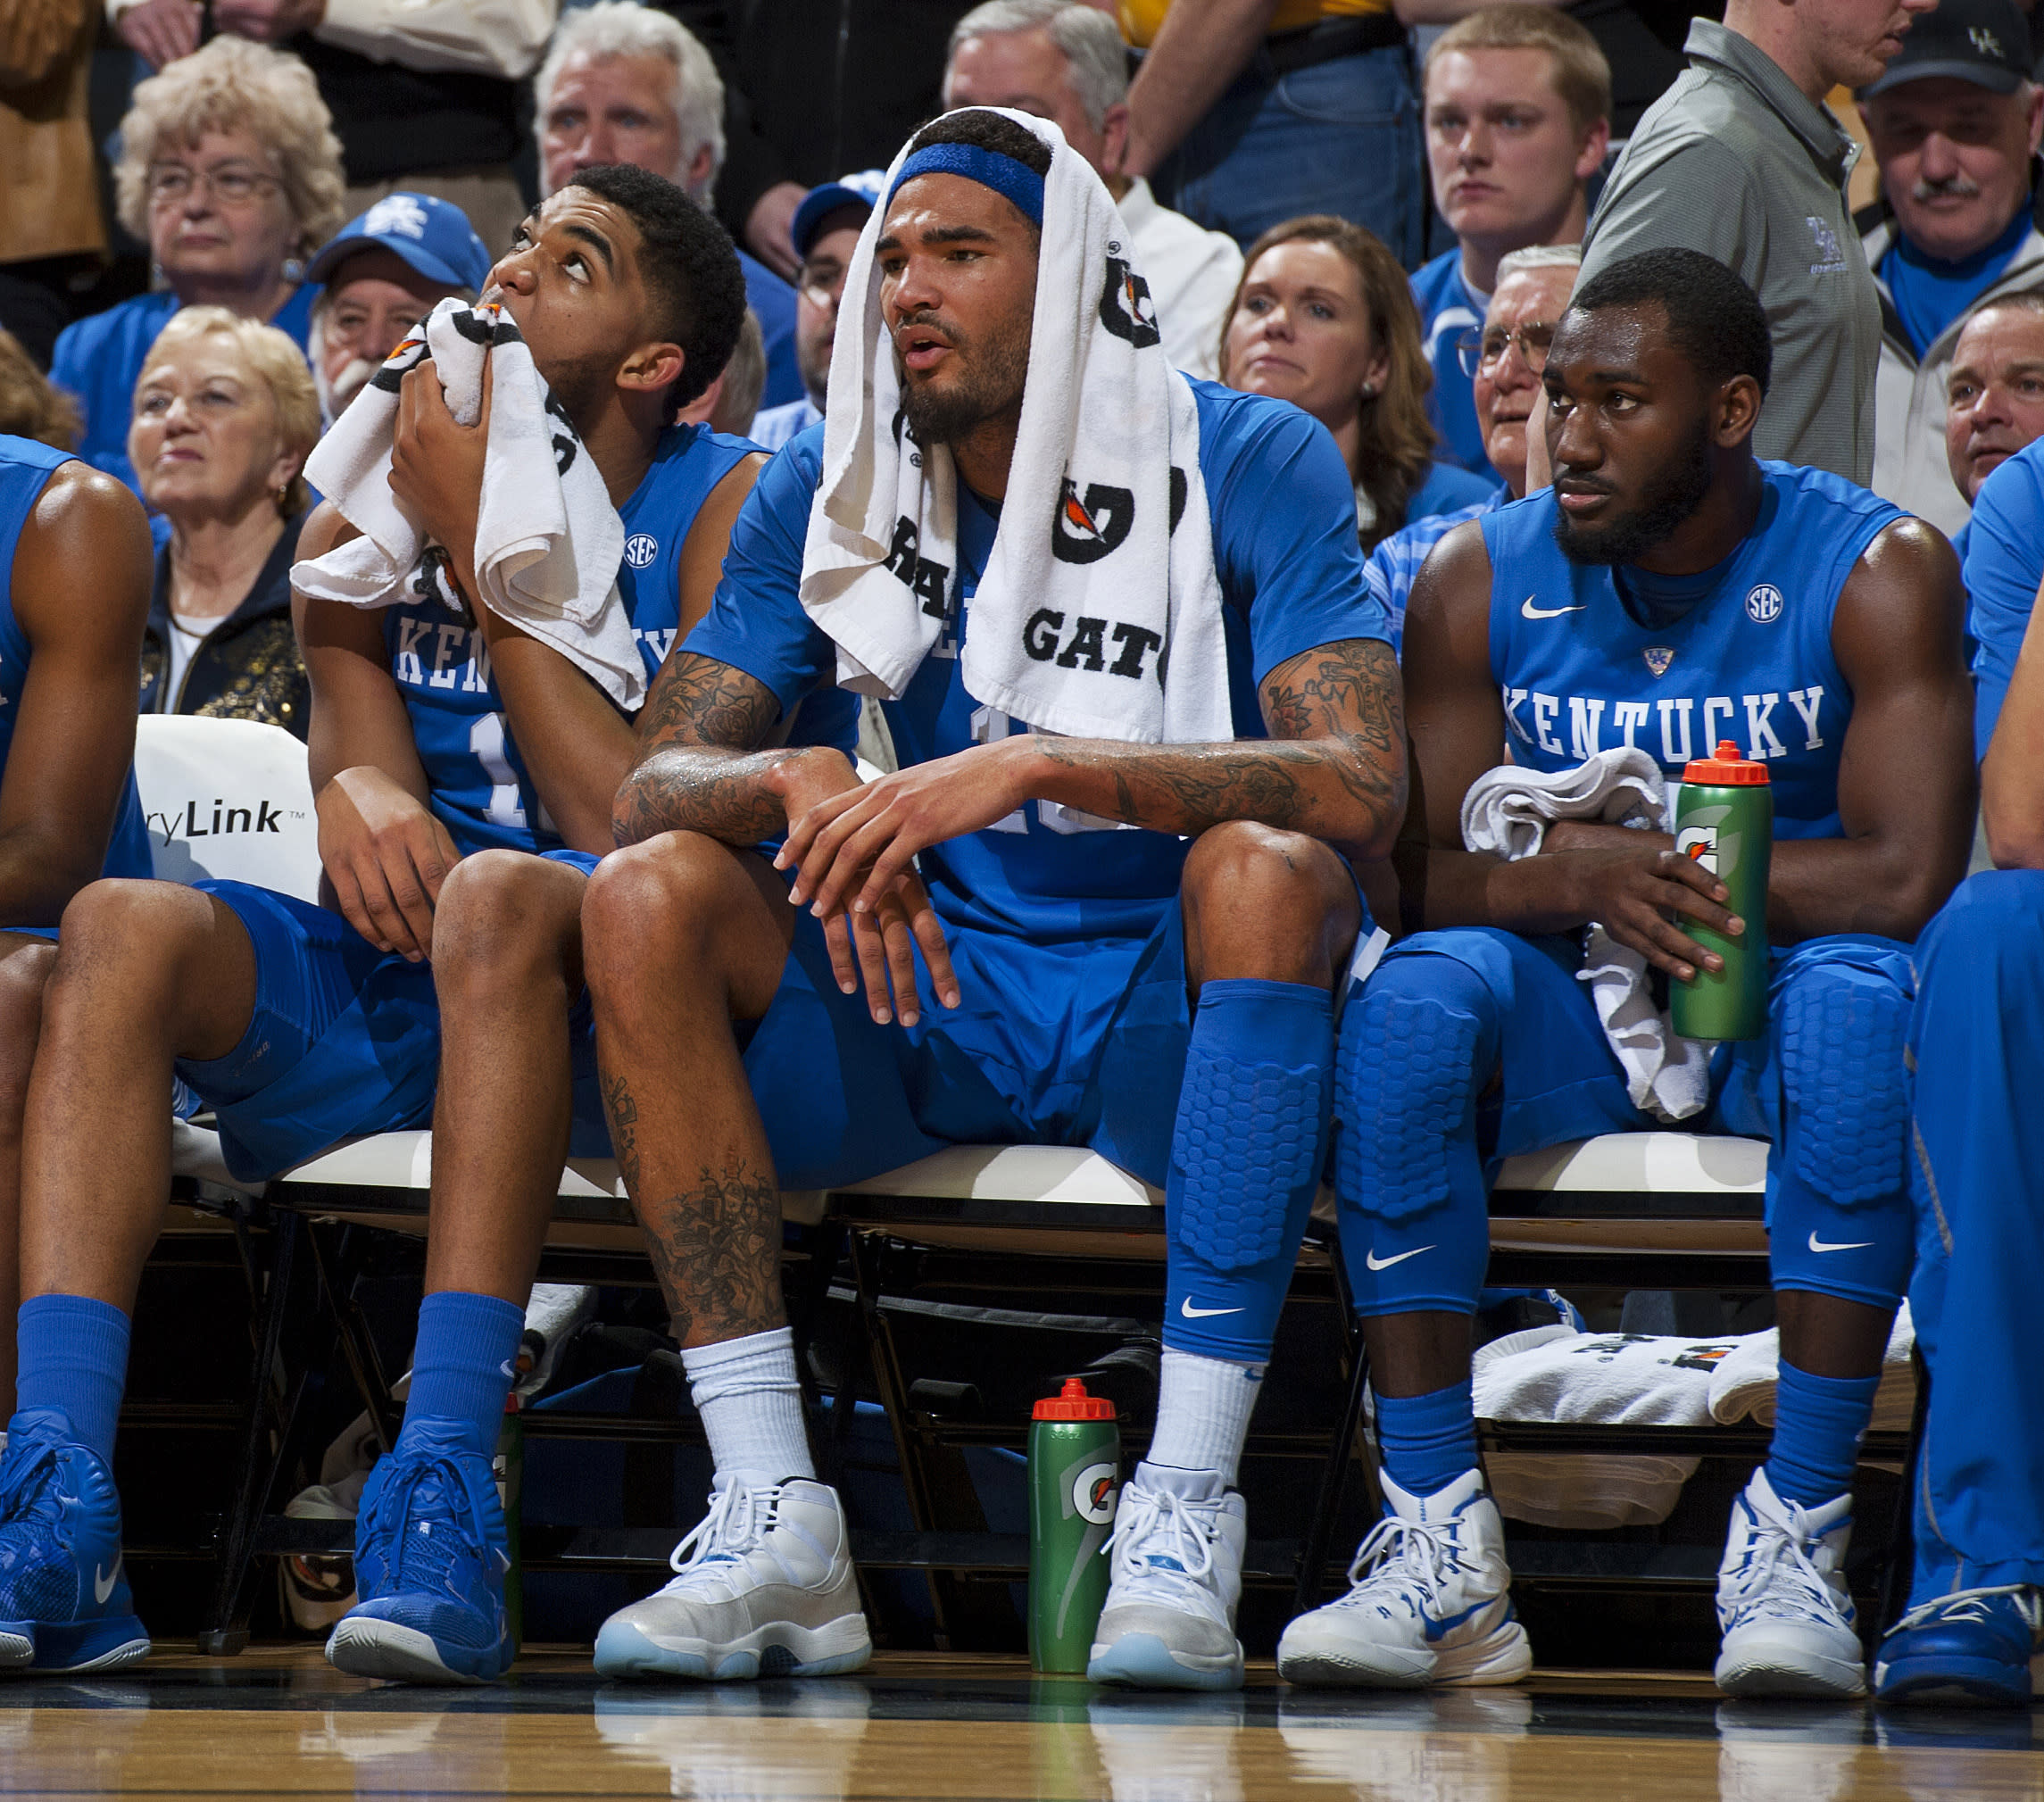 Top-ranked UK keeps rolling as Cauley-Stein goes missing